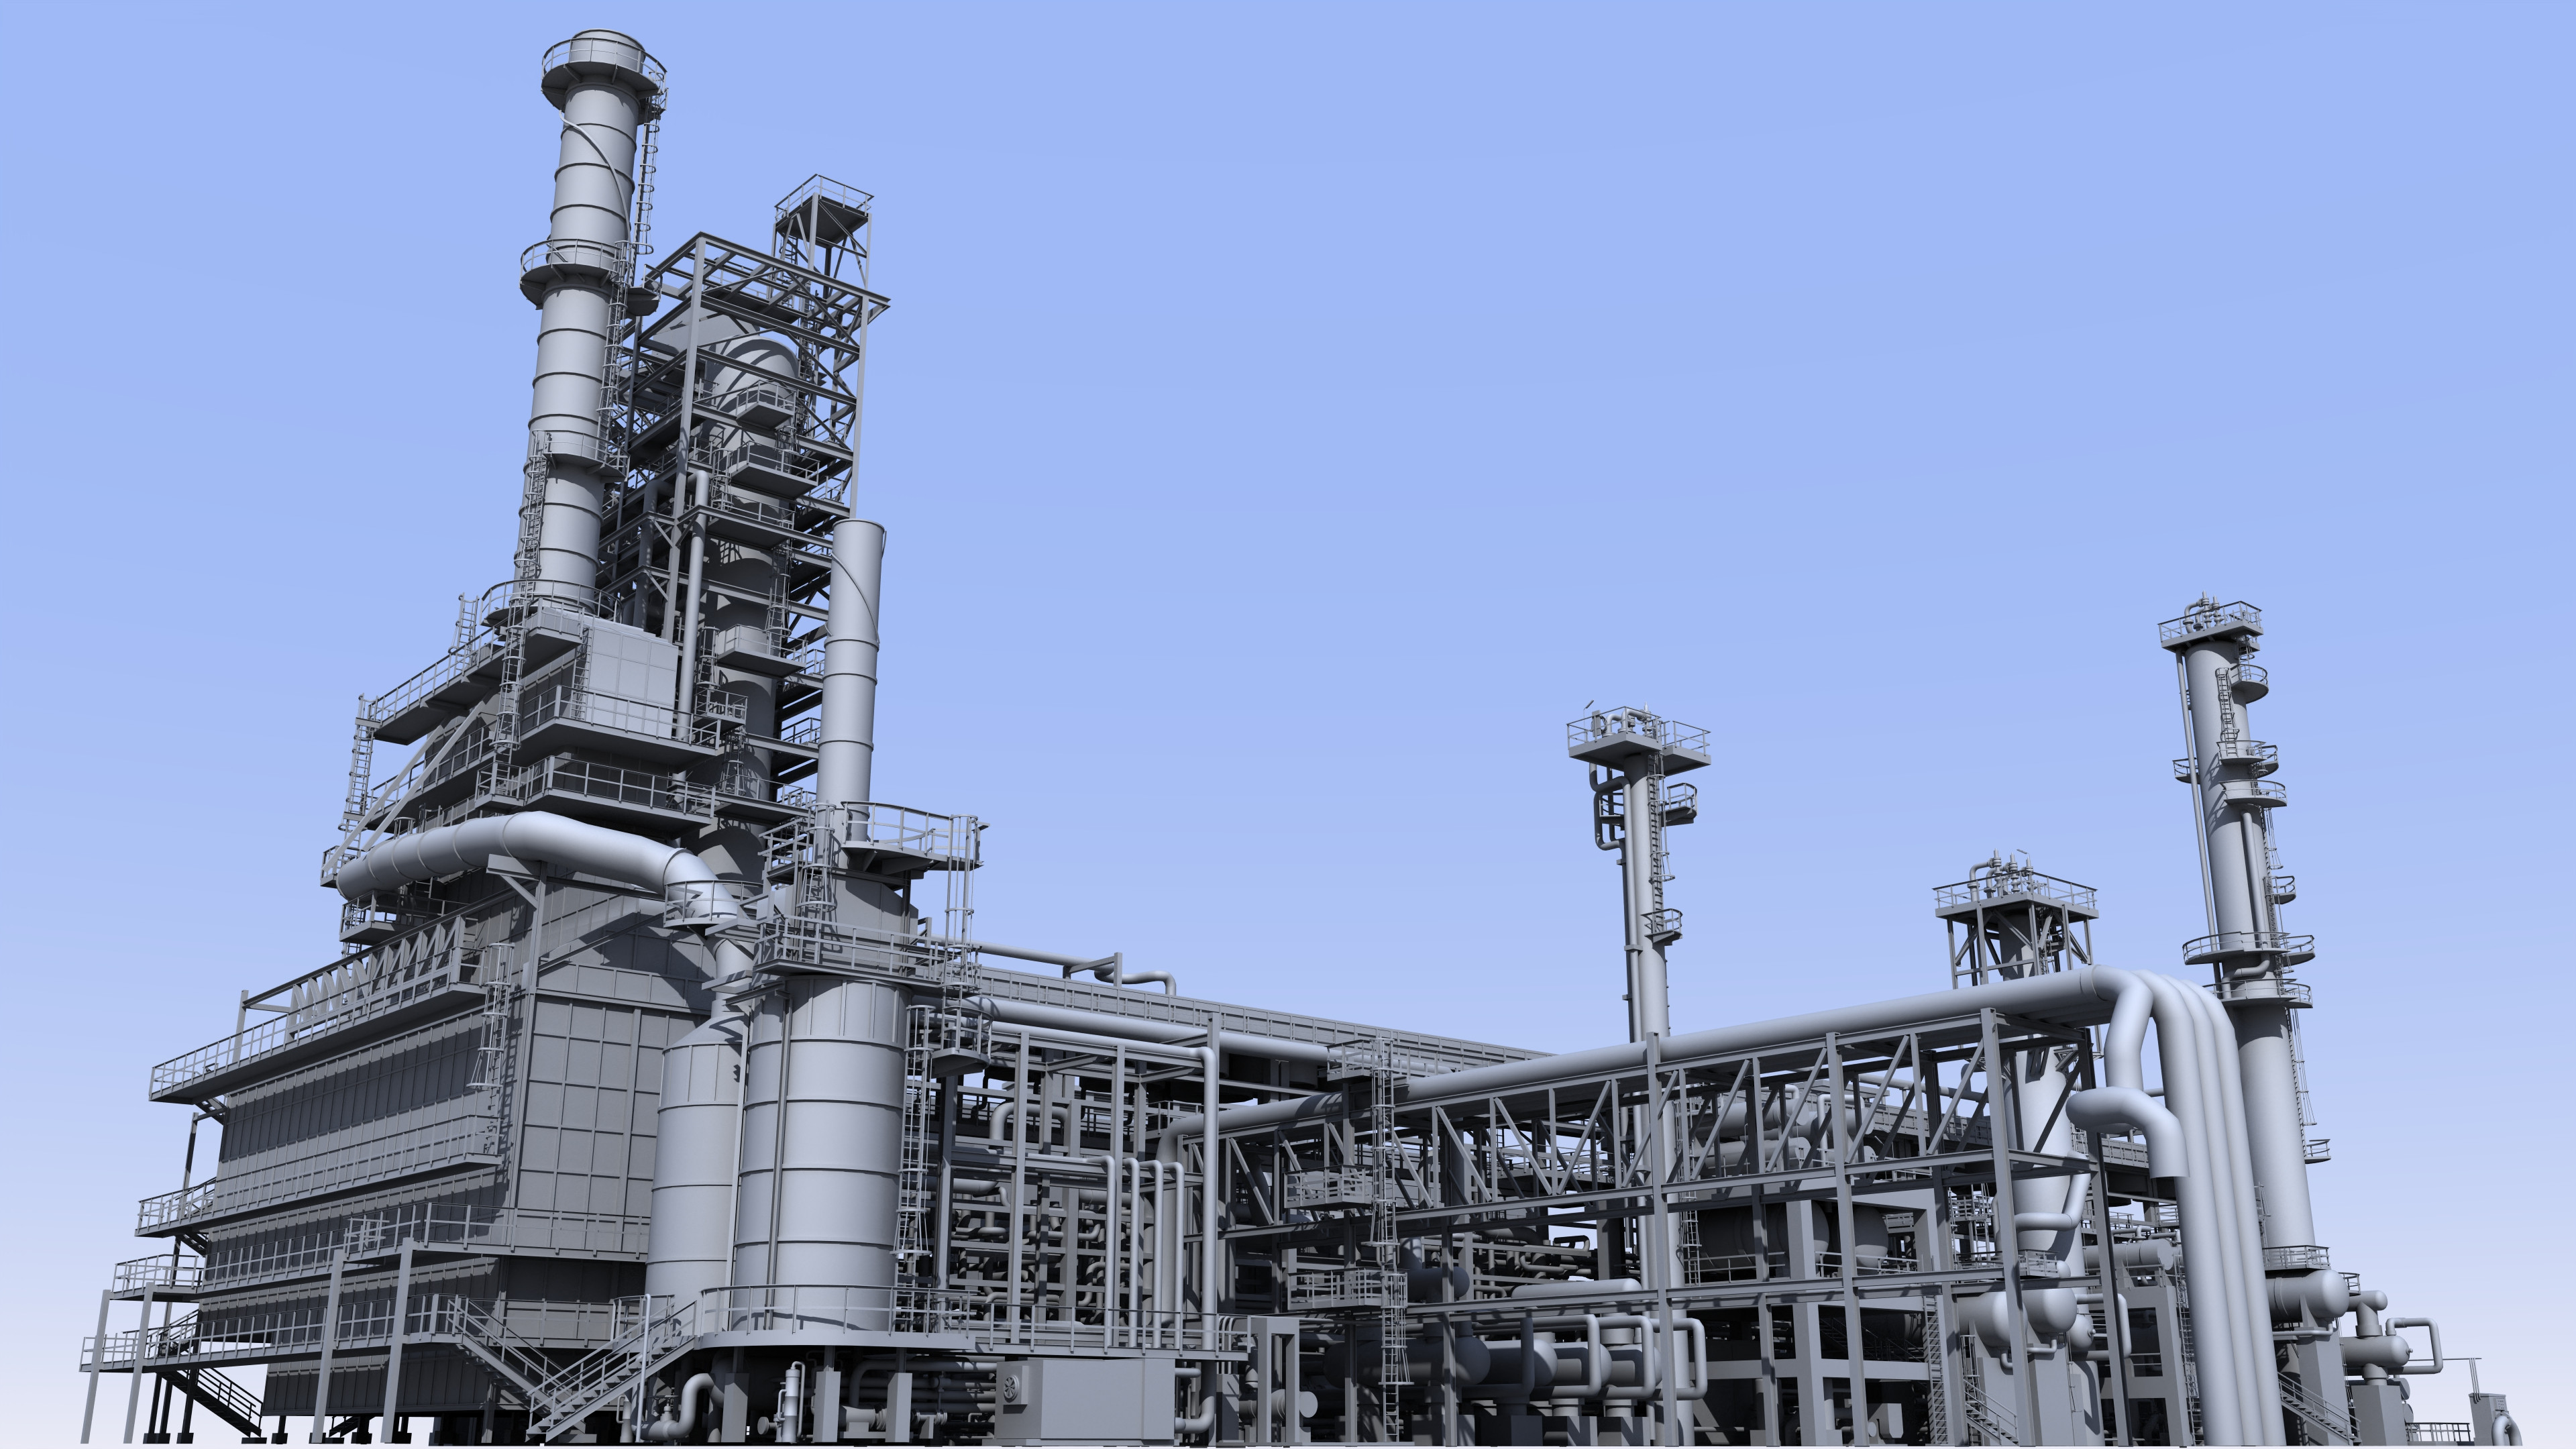 Catalyst regeneration section of oil refinery.